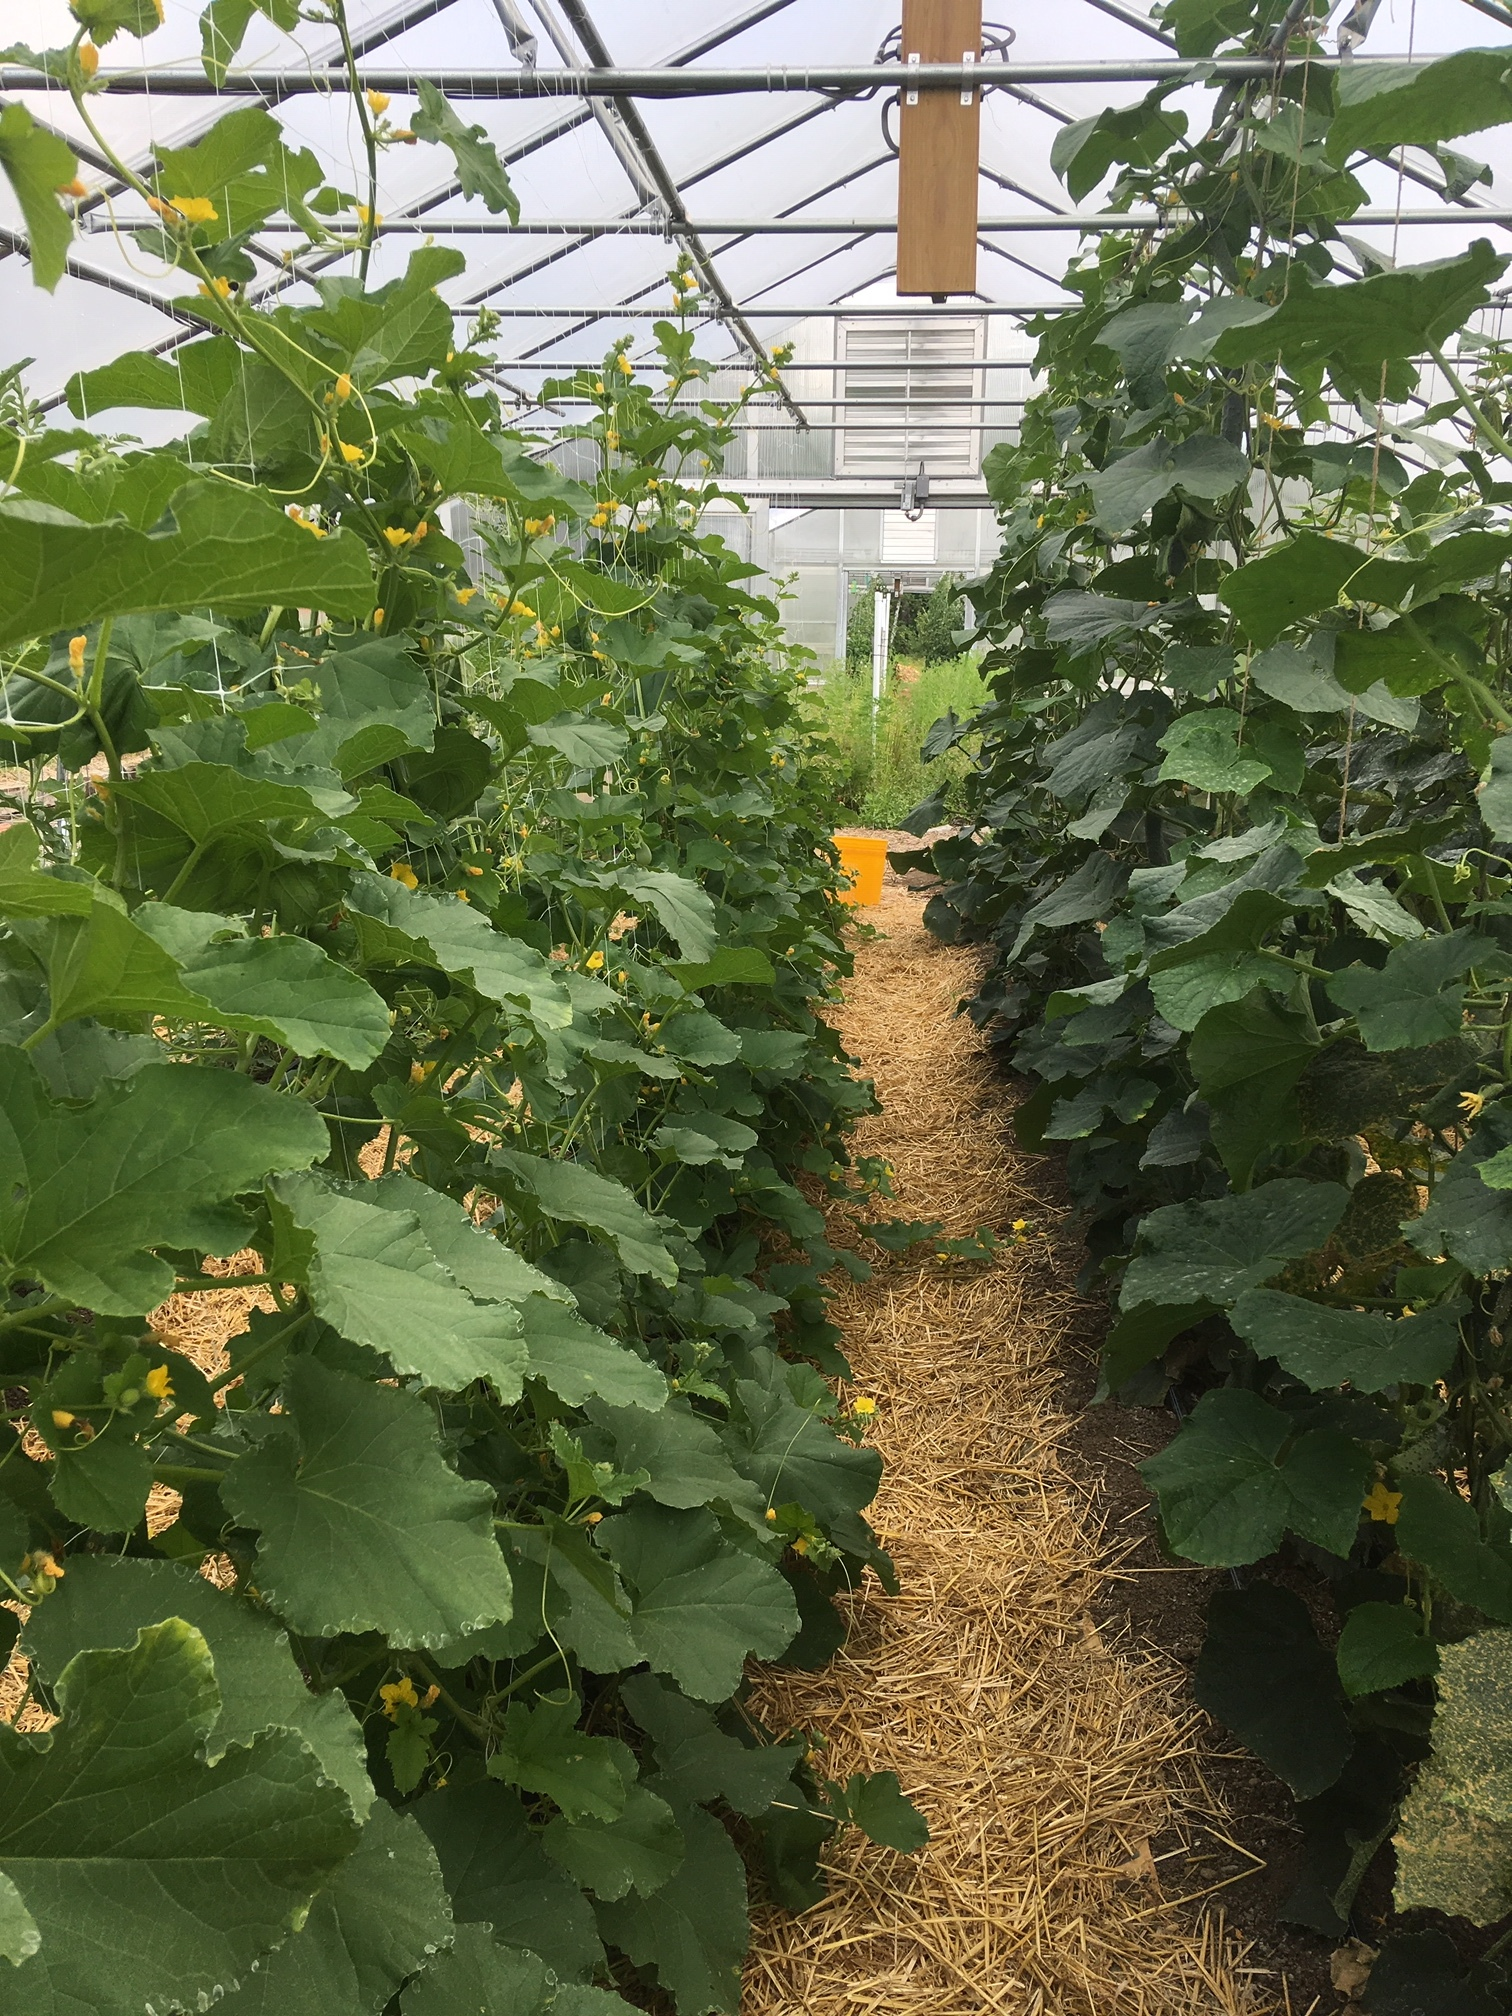 This year, in addition to our vertical-grown cucumbers (right), we are experimenting with vertical-grown melons (left) and watermelons.